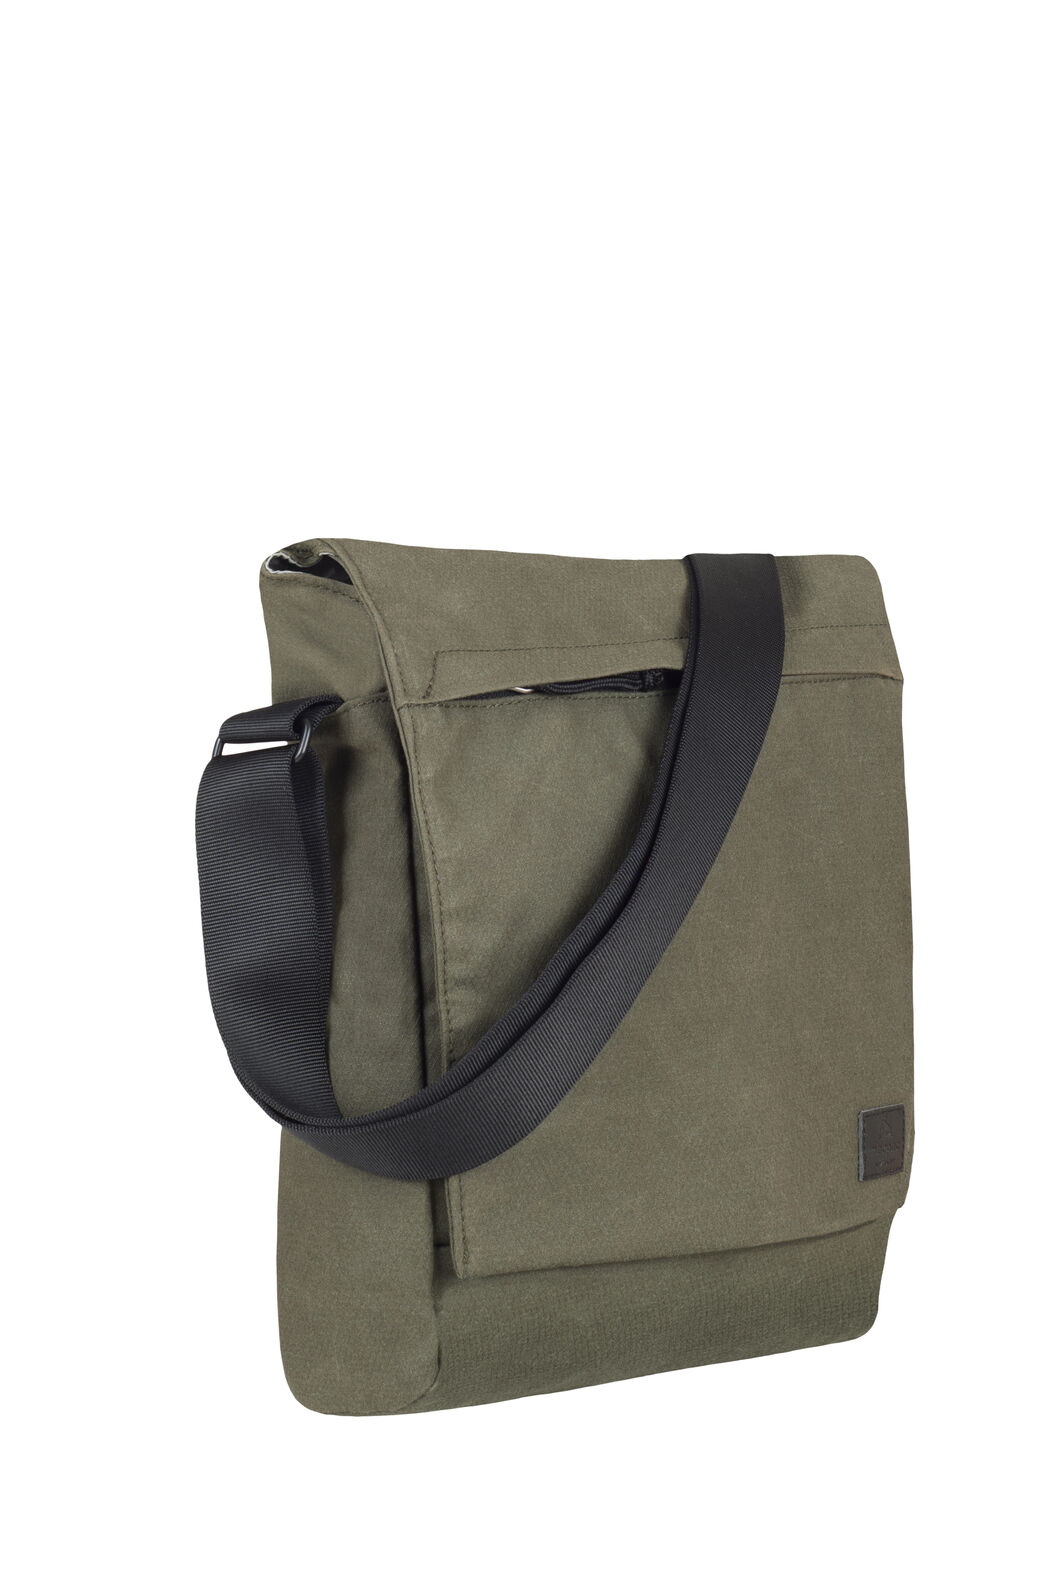 Macpac Checkpoint Satchel, Forest Night, hi-res